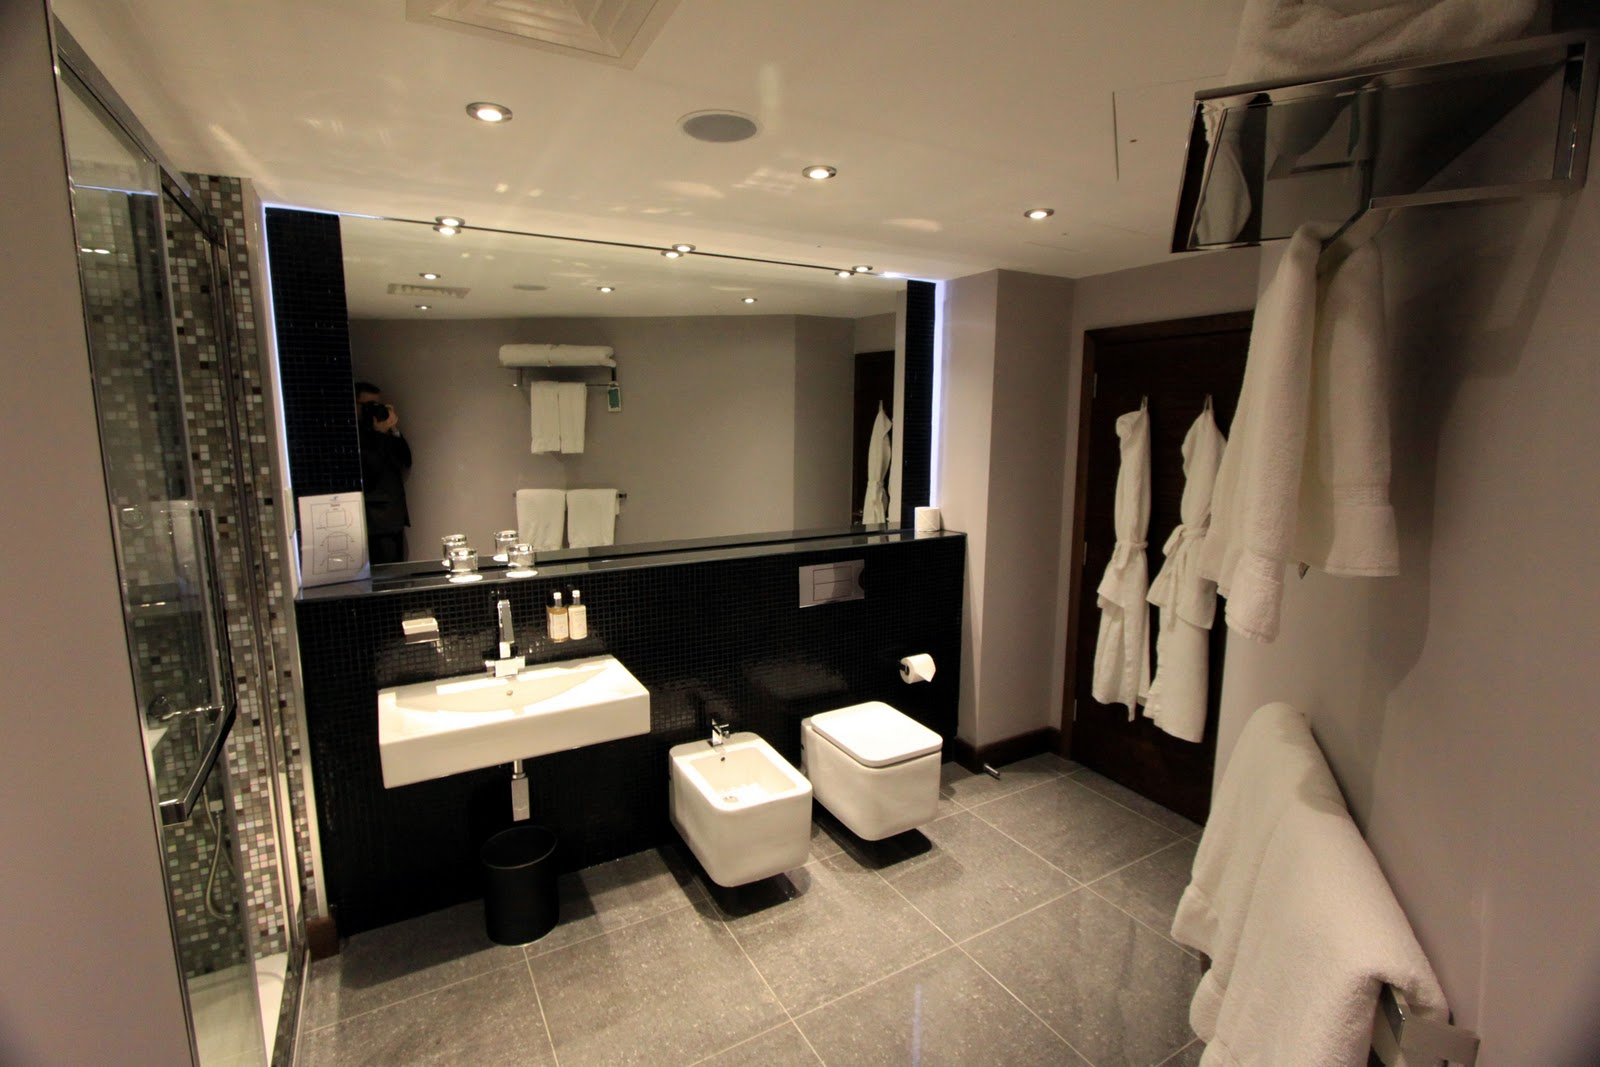 London Hotel Room With Toilet